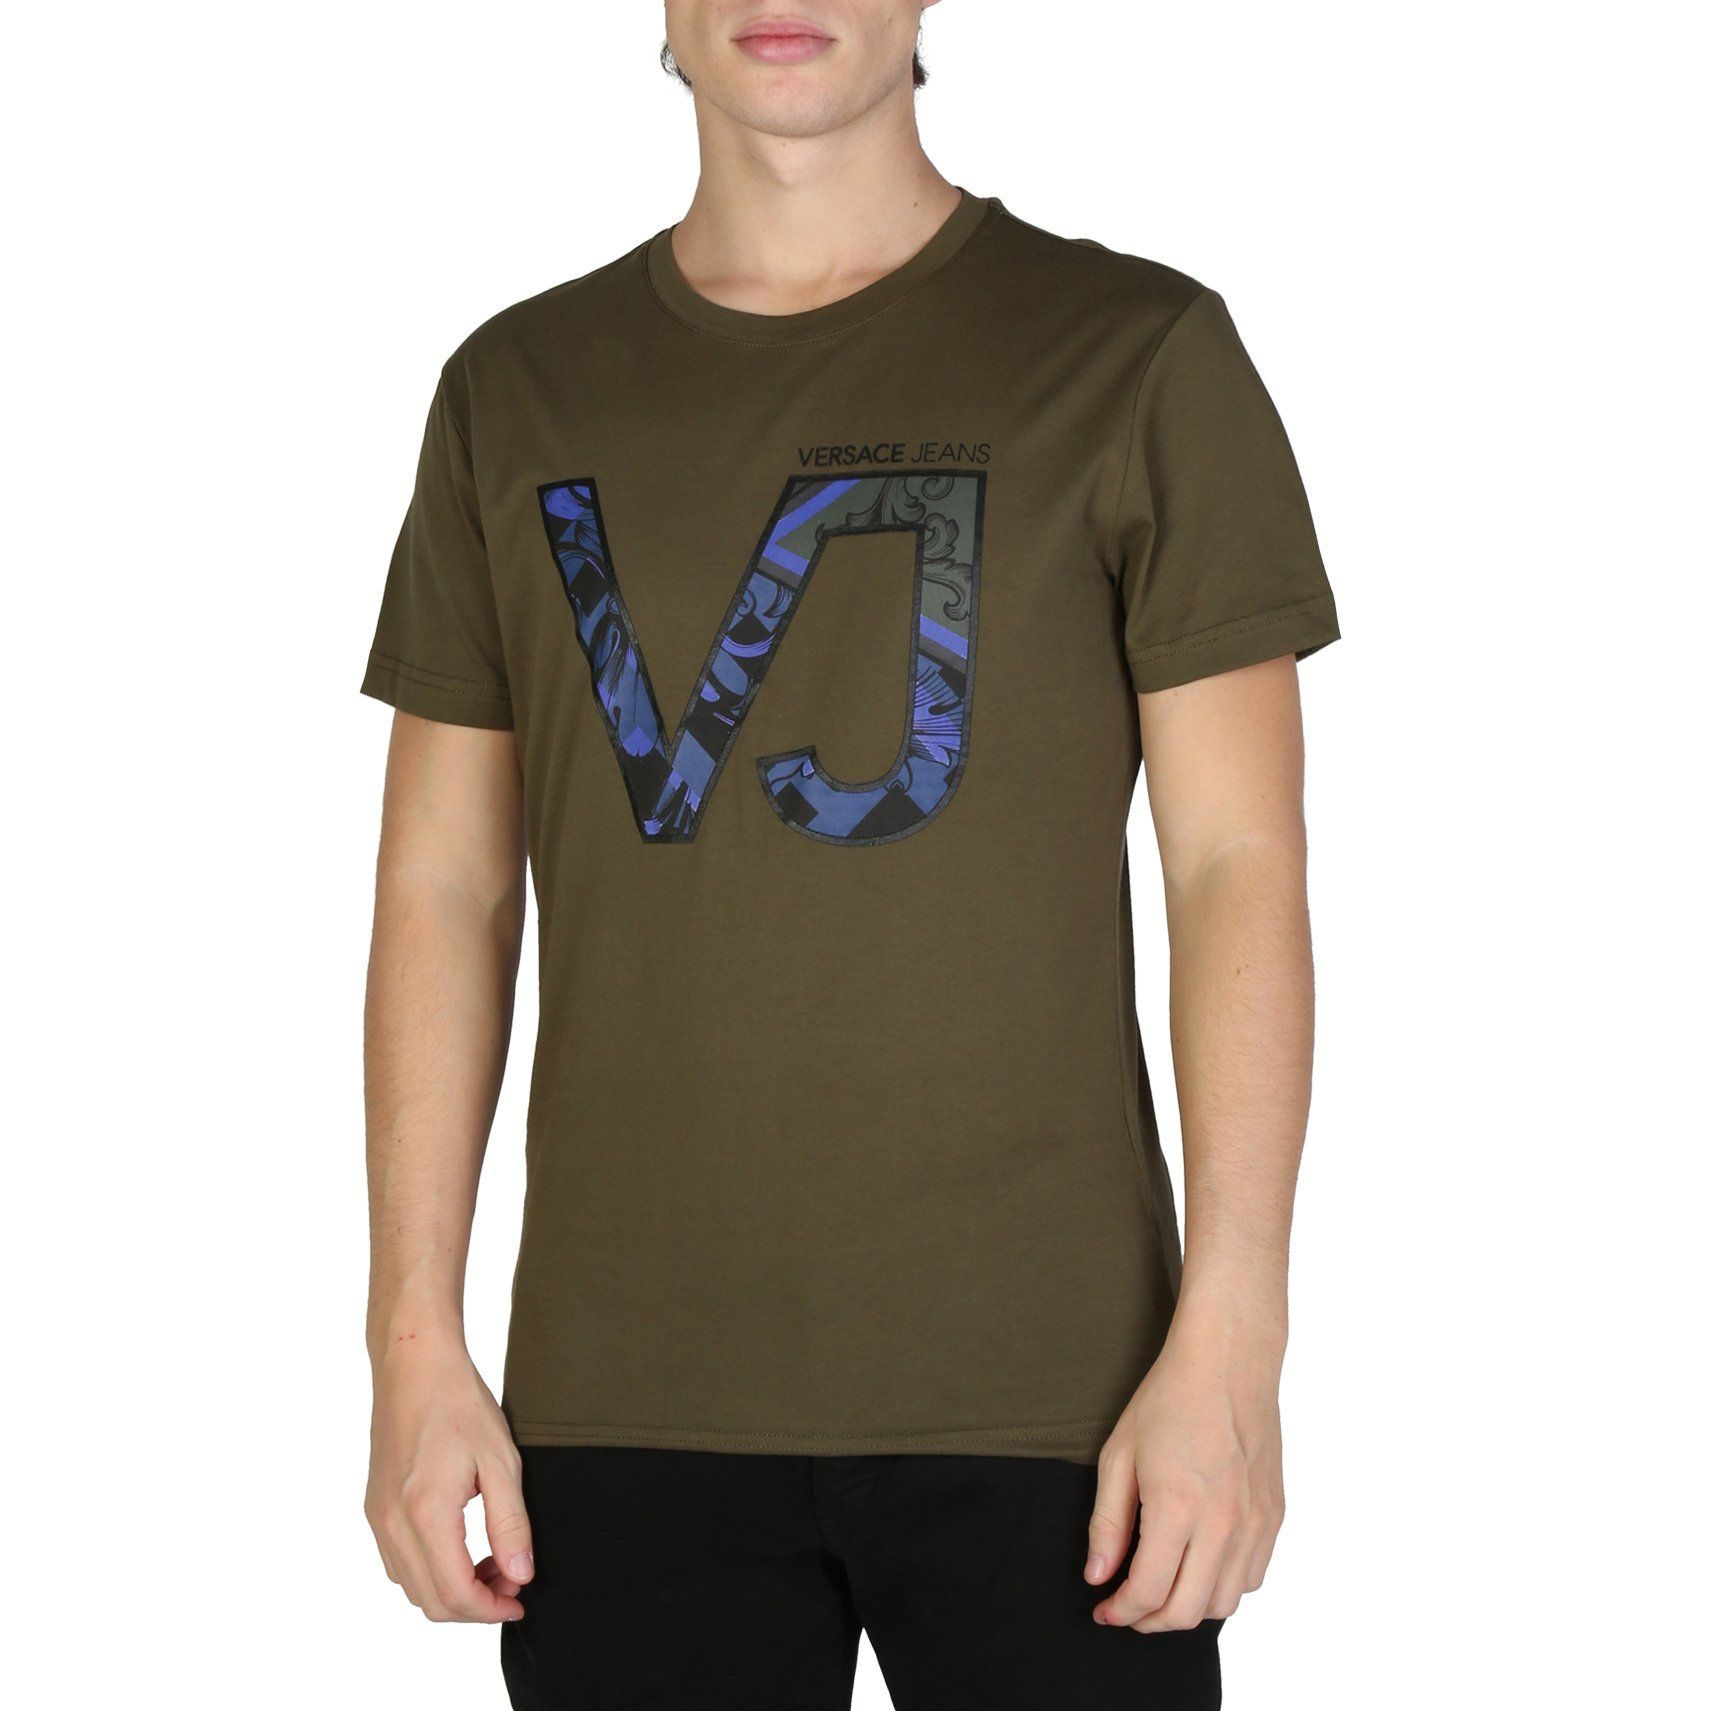 776c2cfc Versace Jeans Military VJ T-Shirt in 2019 | Products | Versace jeans ...